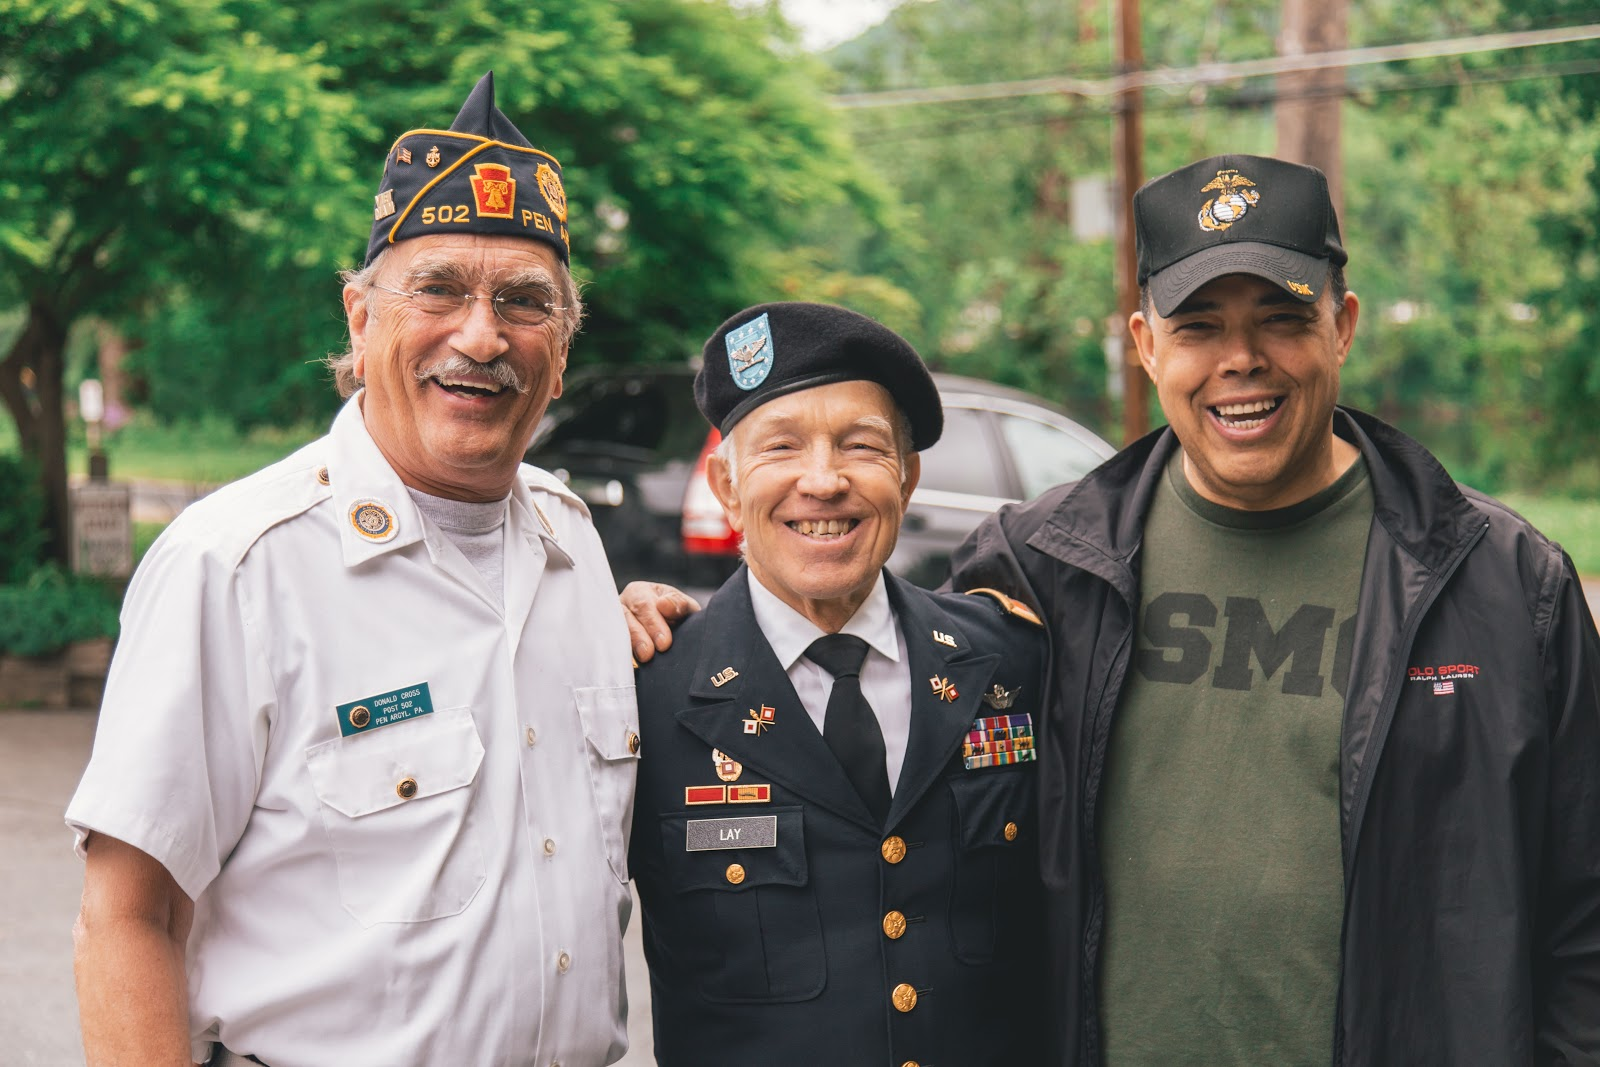 veterans smiling together